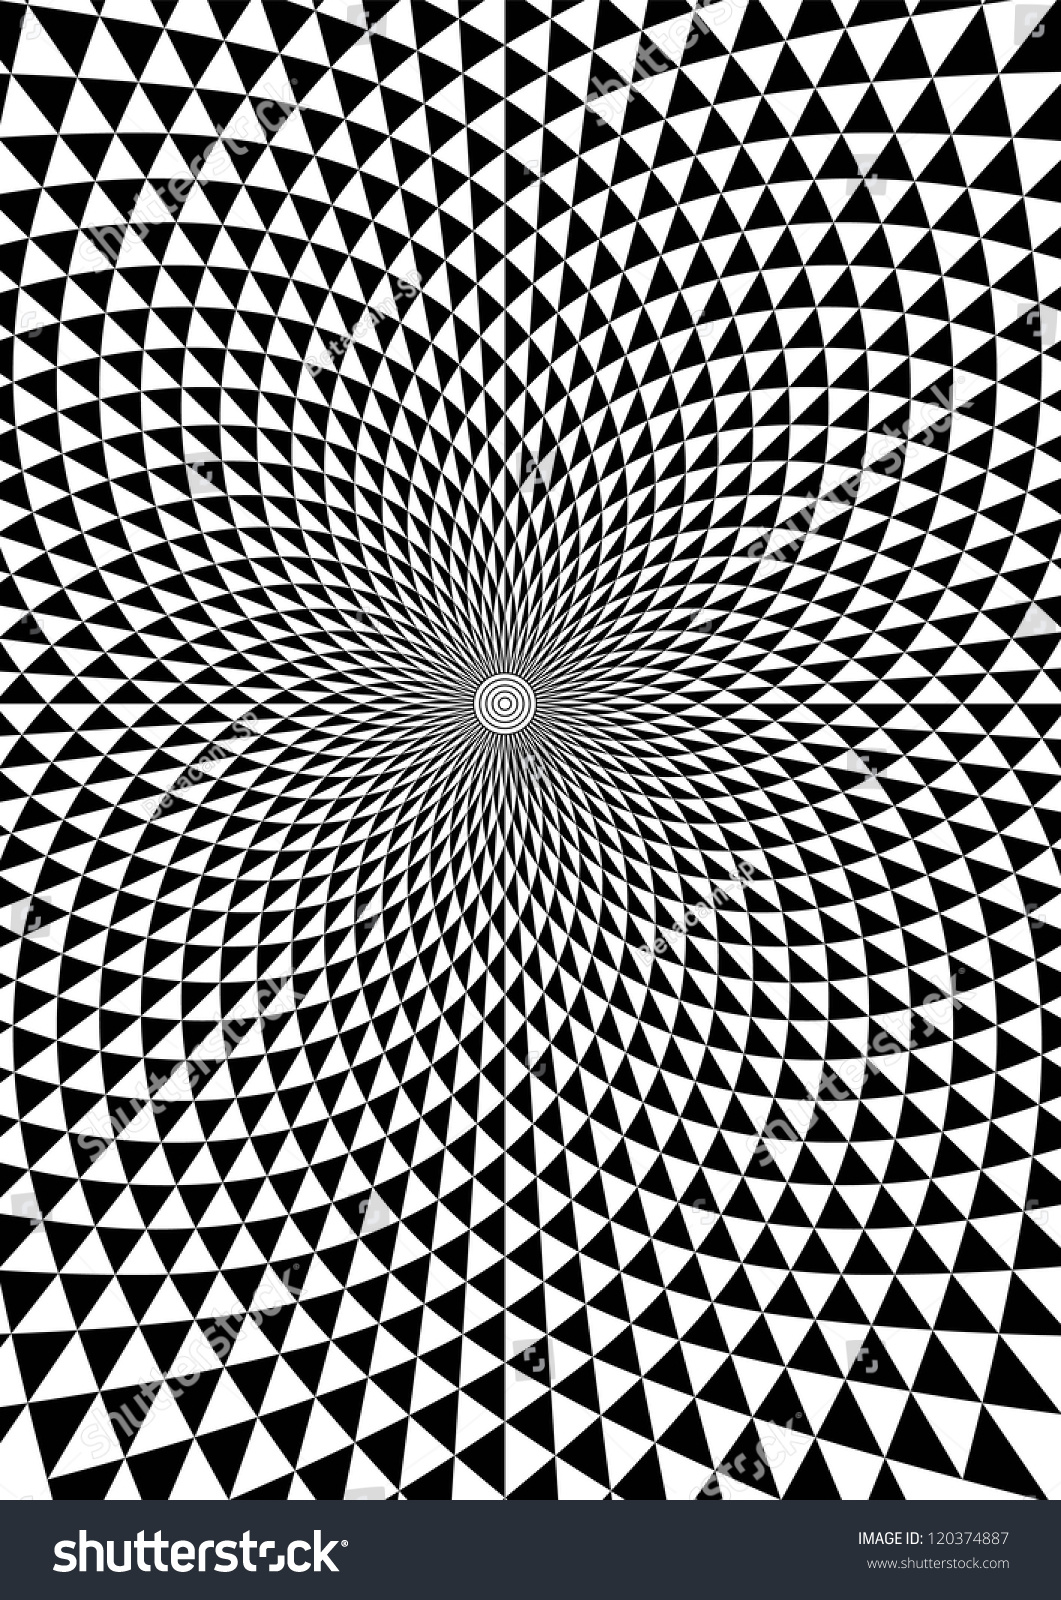 visual illusions essay Read this miscellaneous essay and over 88,000 other research documents what causes optical illusions what causes optical illusions optical illusions are how the eye sees the illusion.